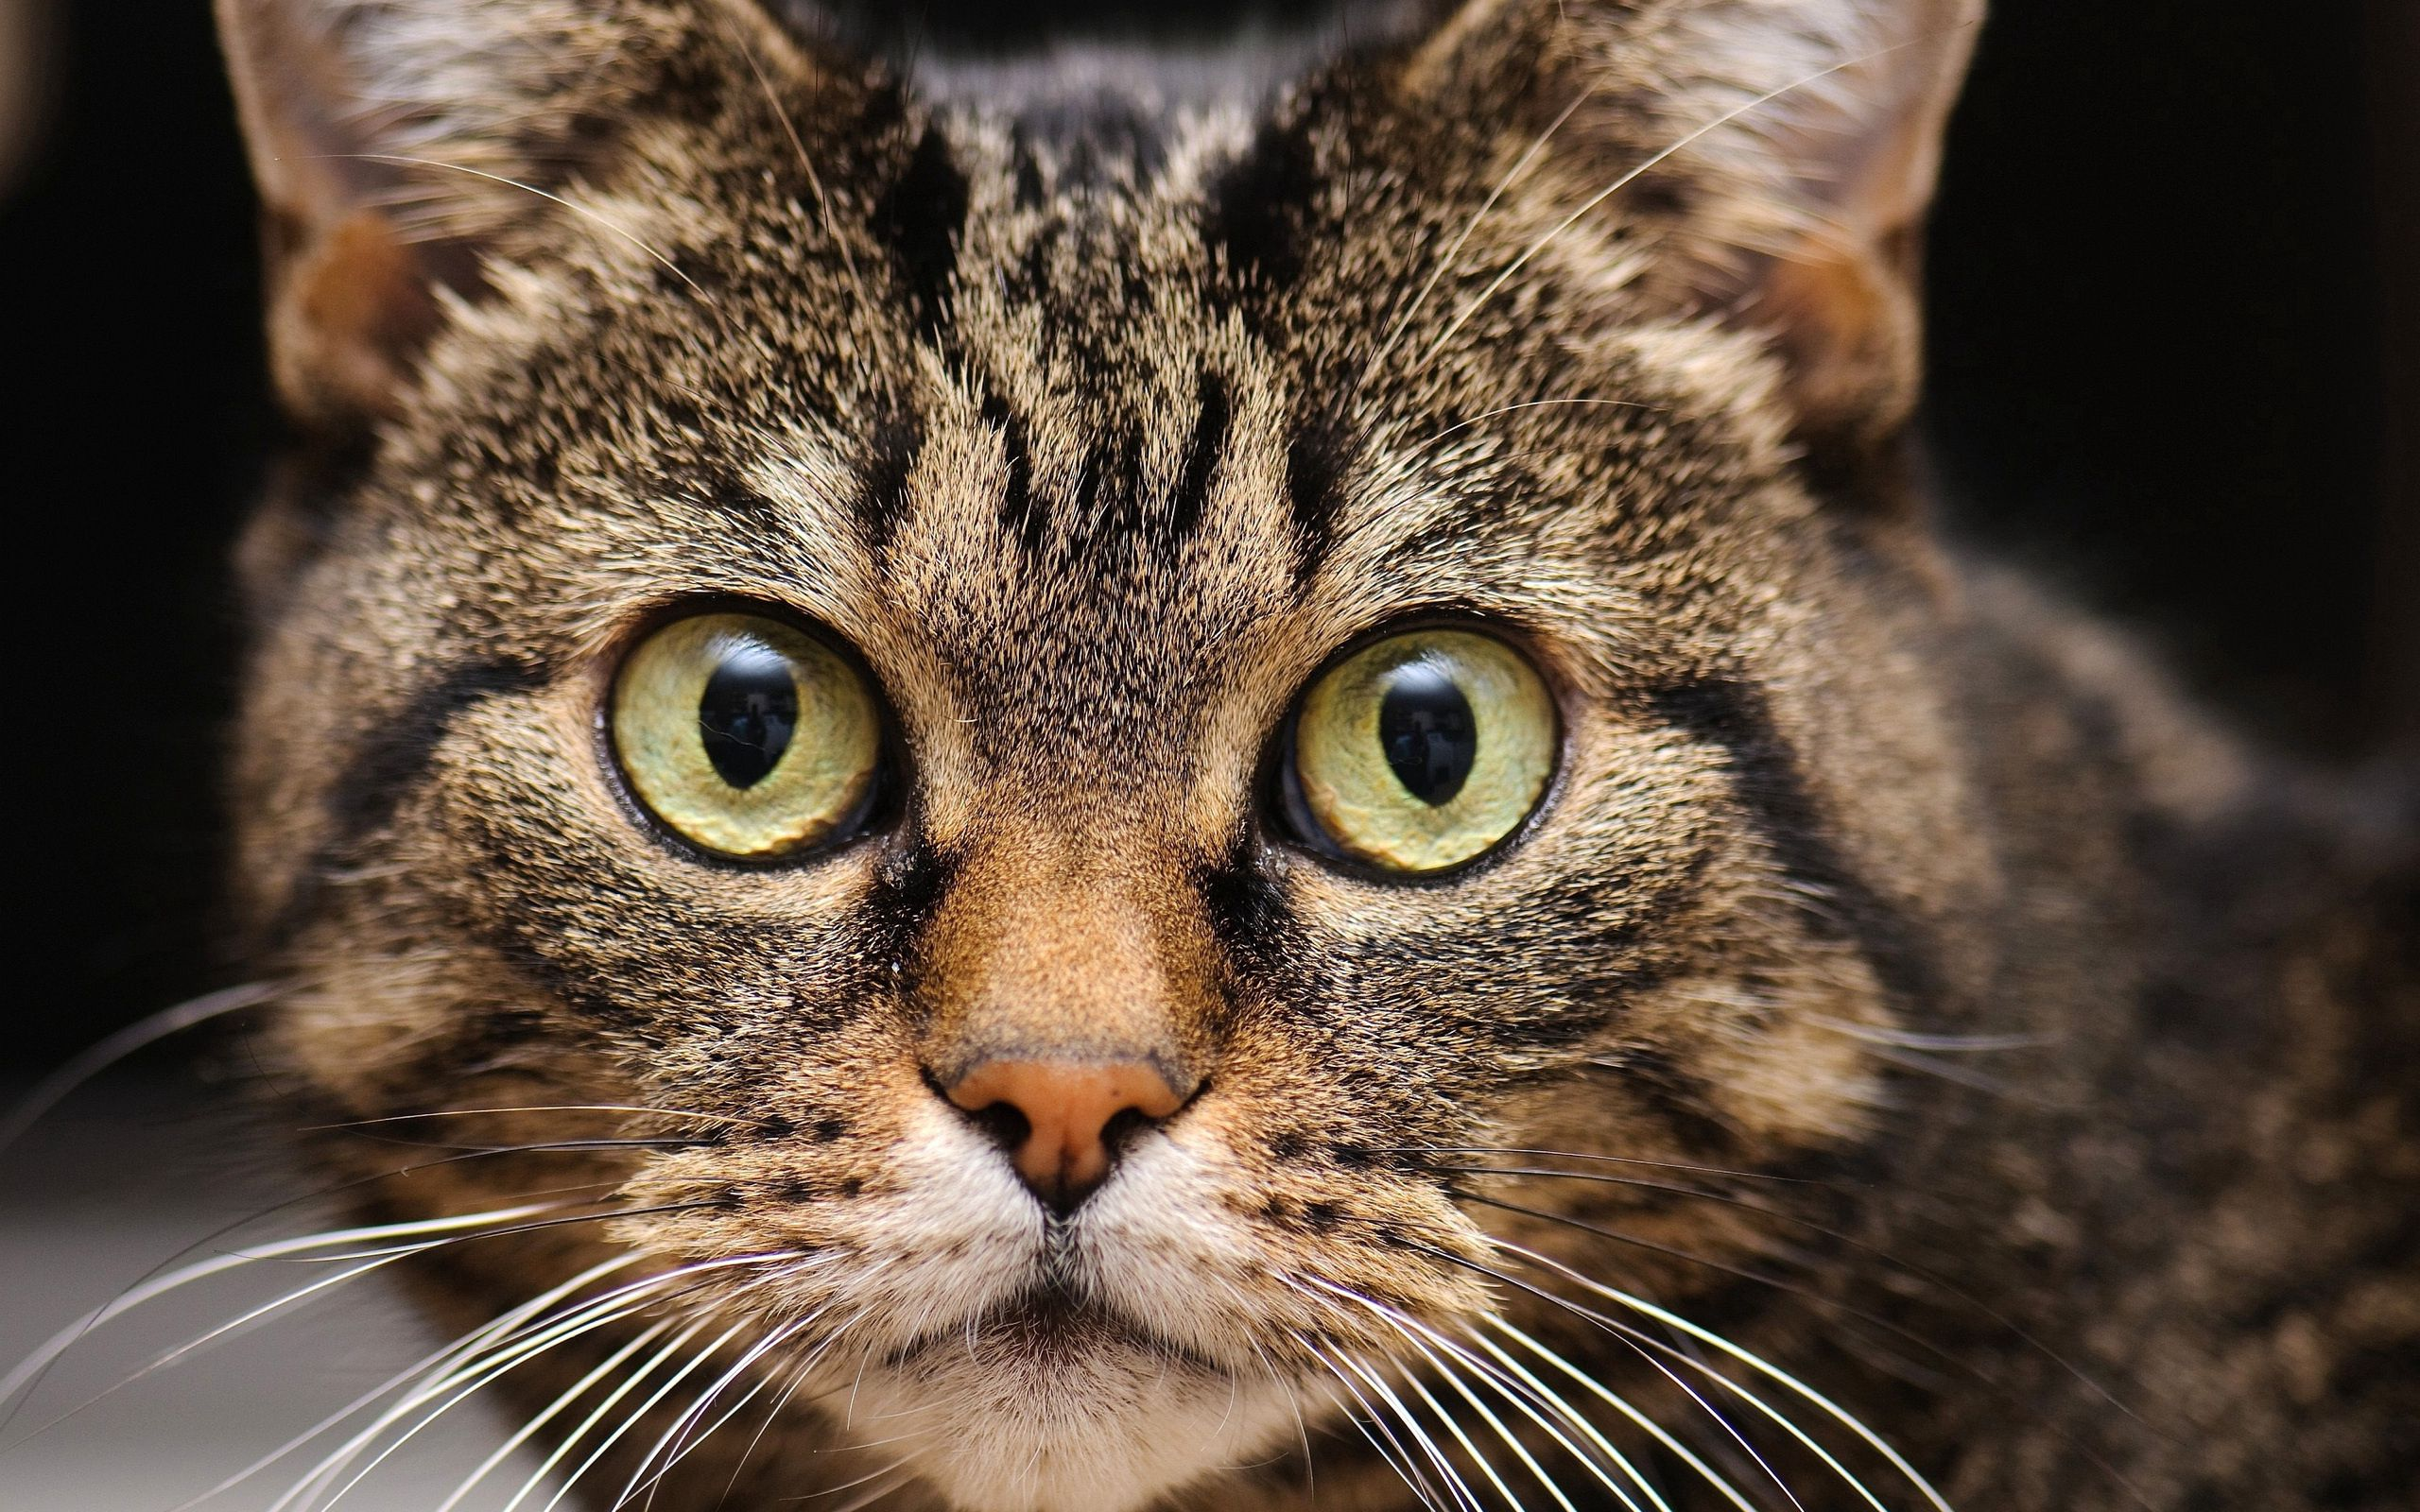 82808 download wallpaper Animals, Muzzle, Cat, Mustache, Moustache, Eyes, Sight, Opinion screensavers and pictures for free